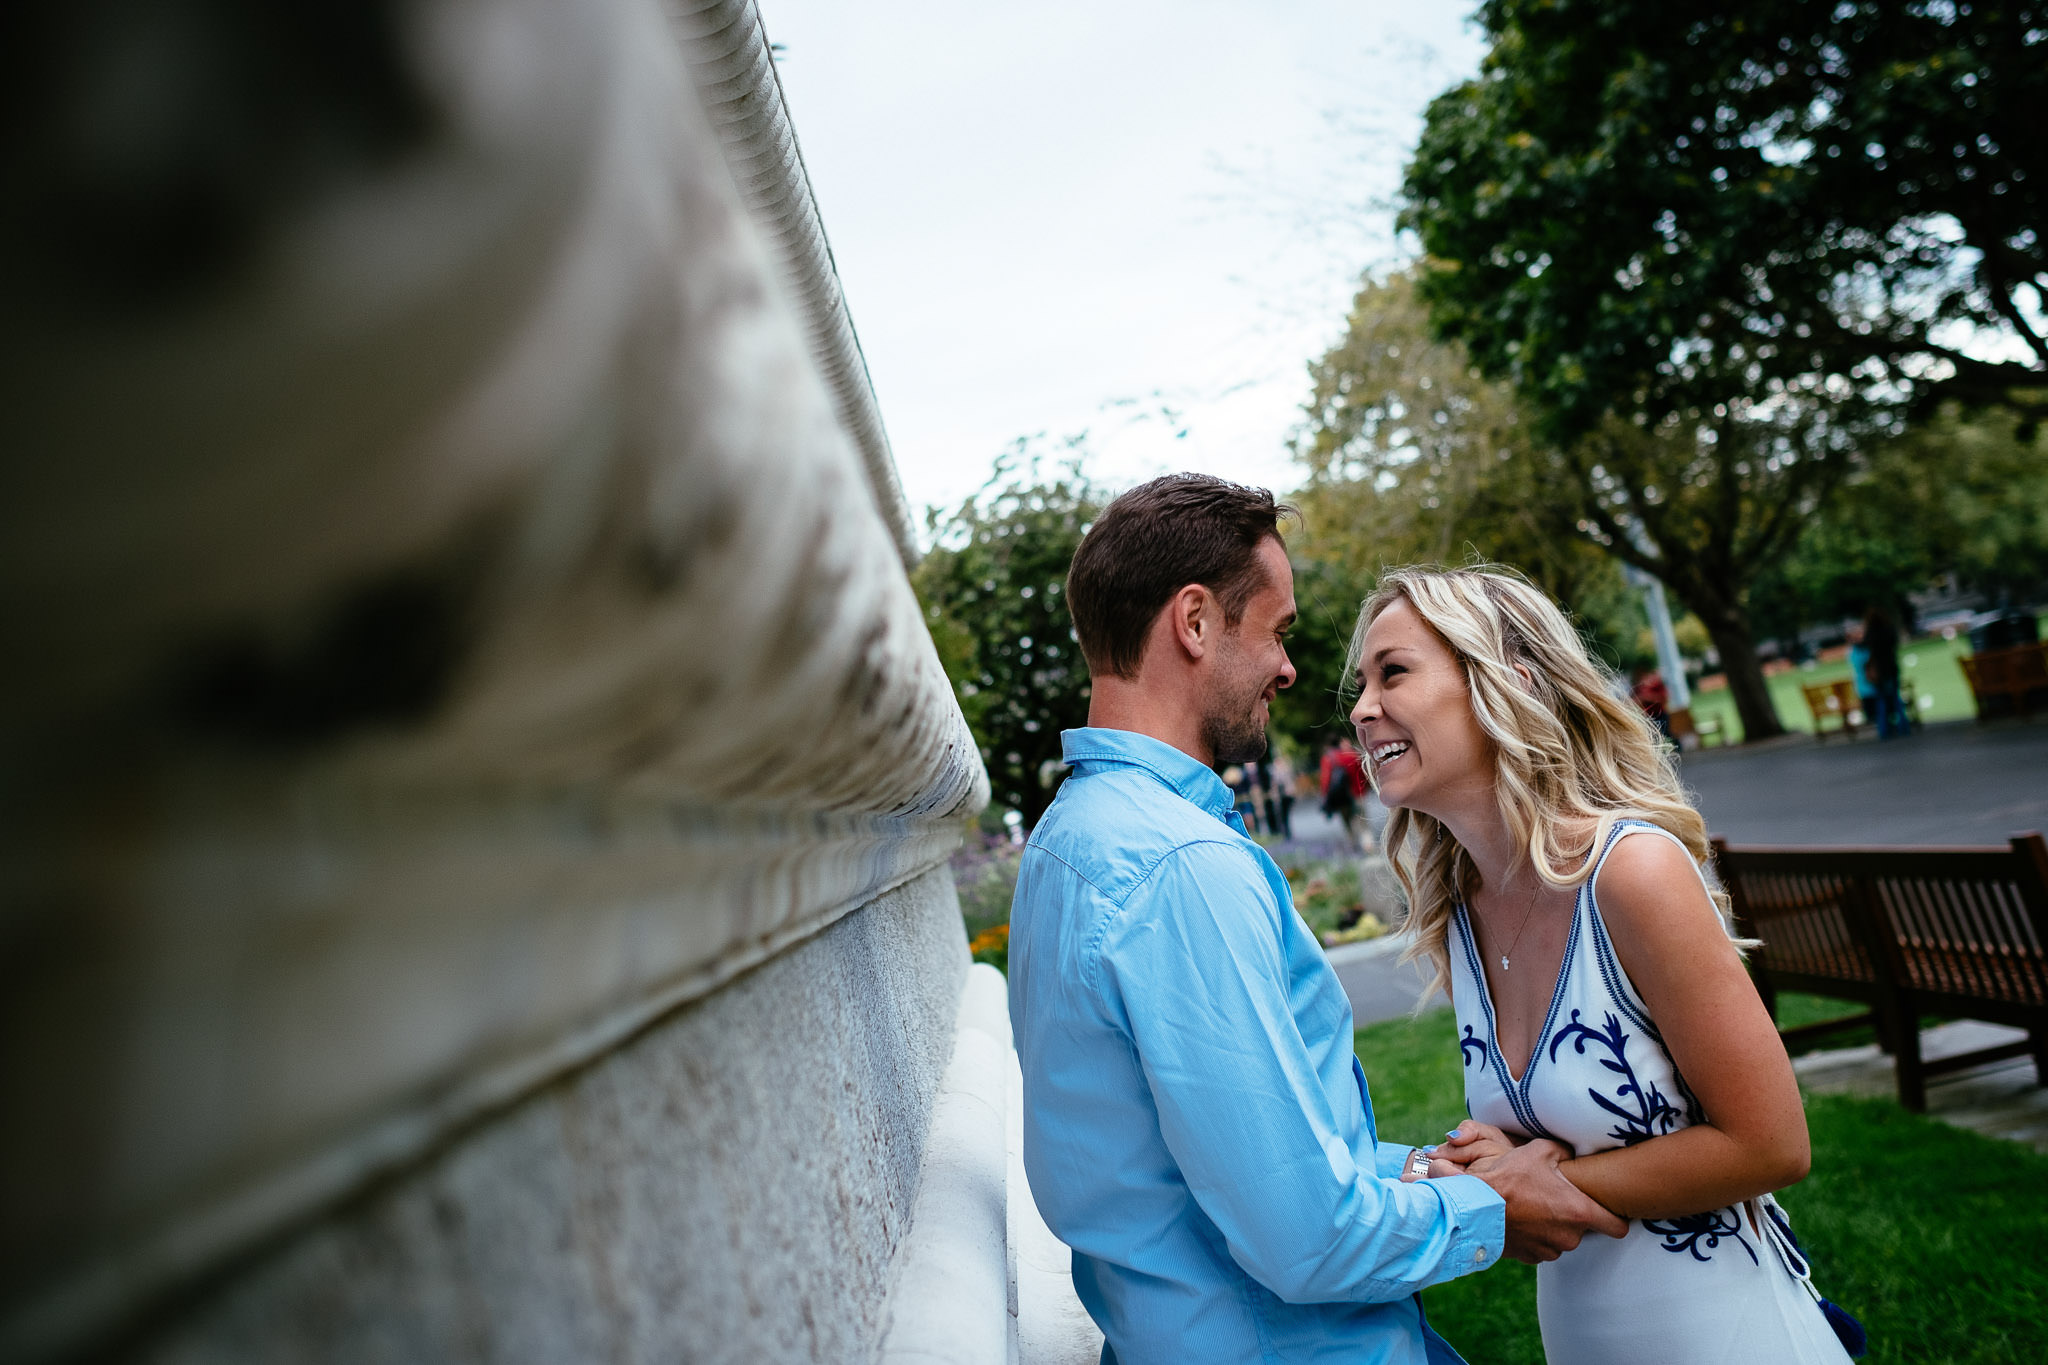 engaged hetrosexual couple laughing and standingg by a wall during their engagement photo session in Trinity College Dublin Ireland